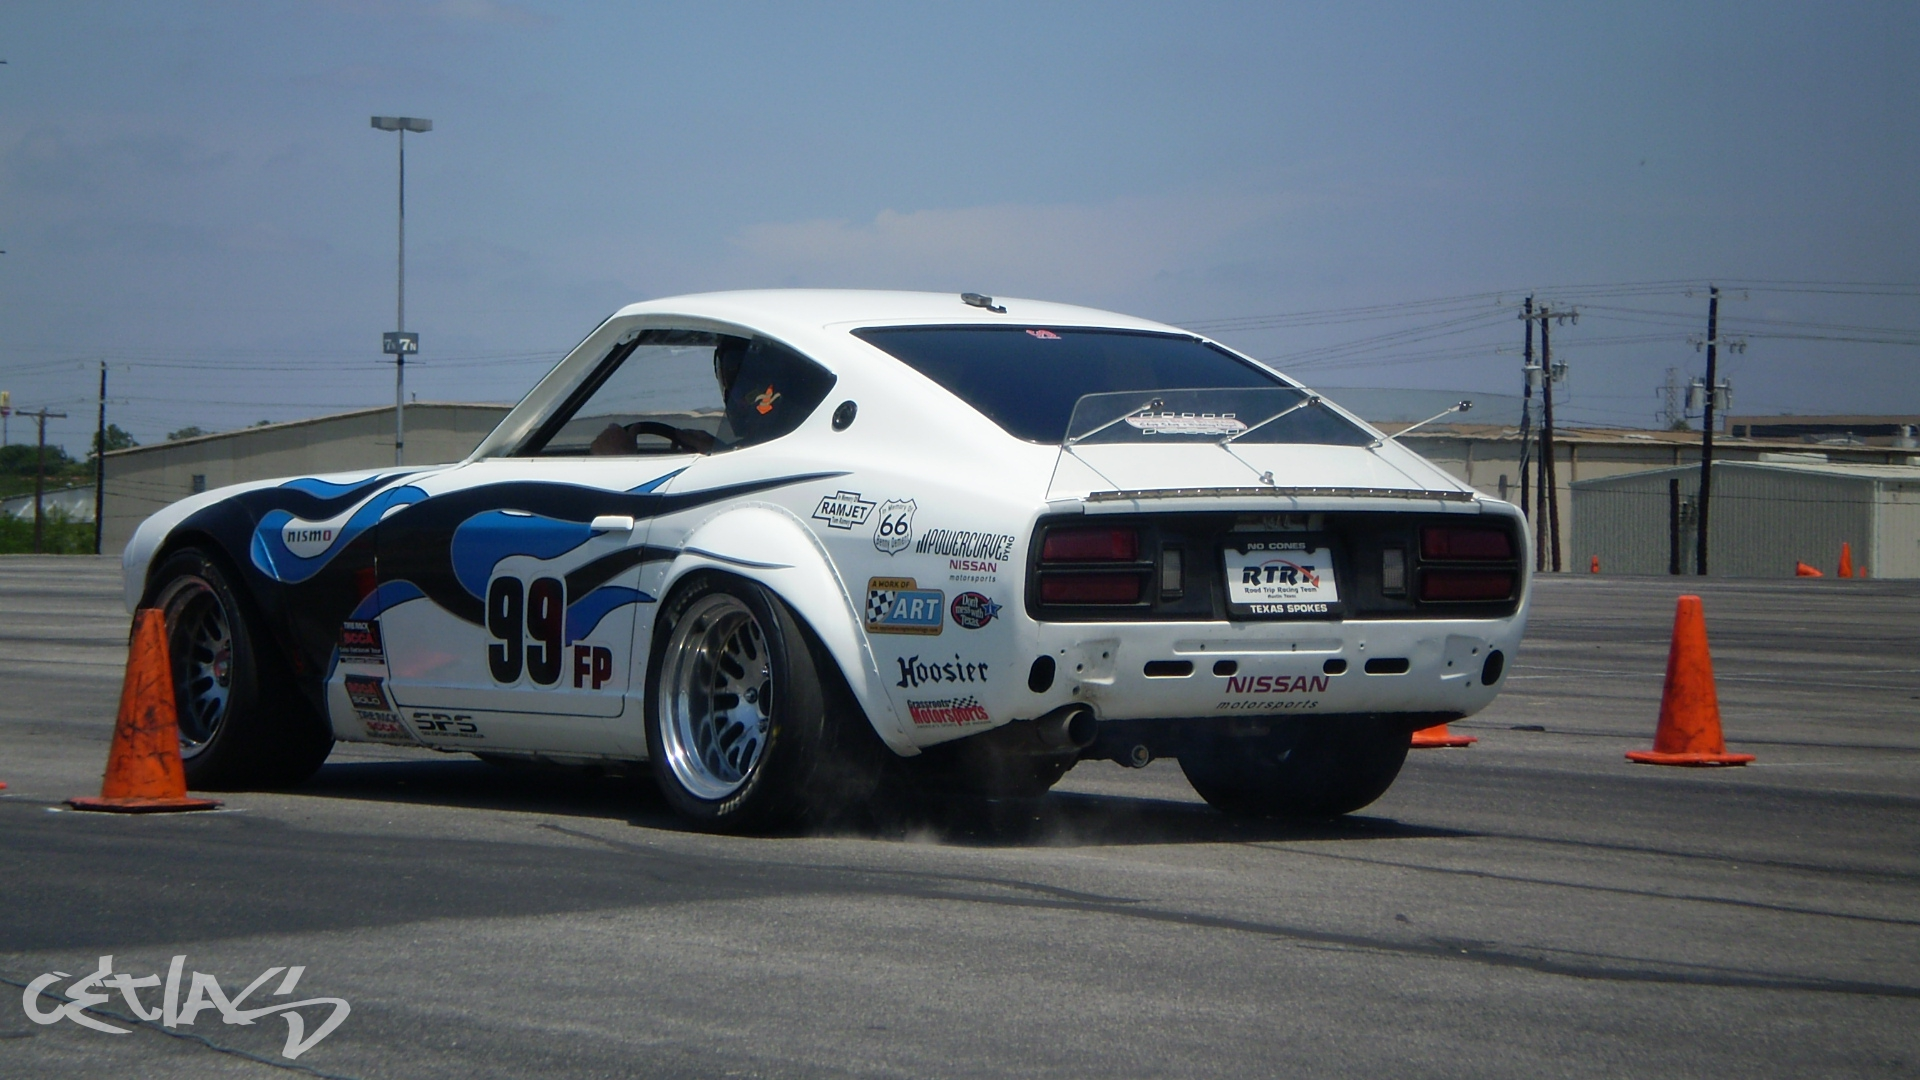 Datsun 240z Wallpaper - WallpaperSafari